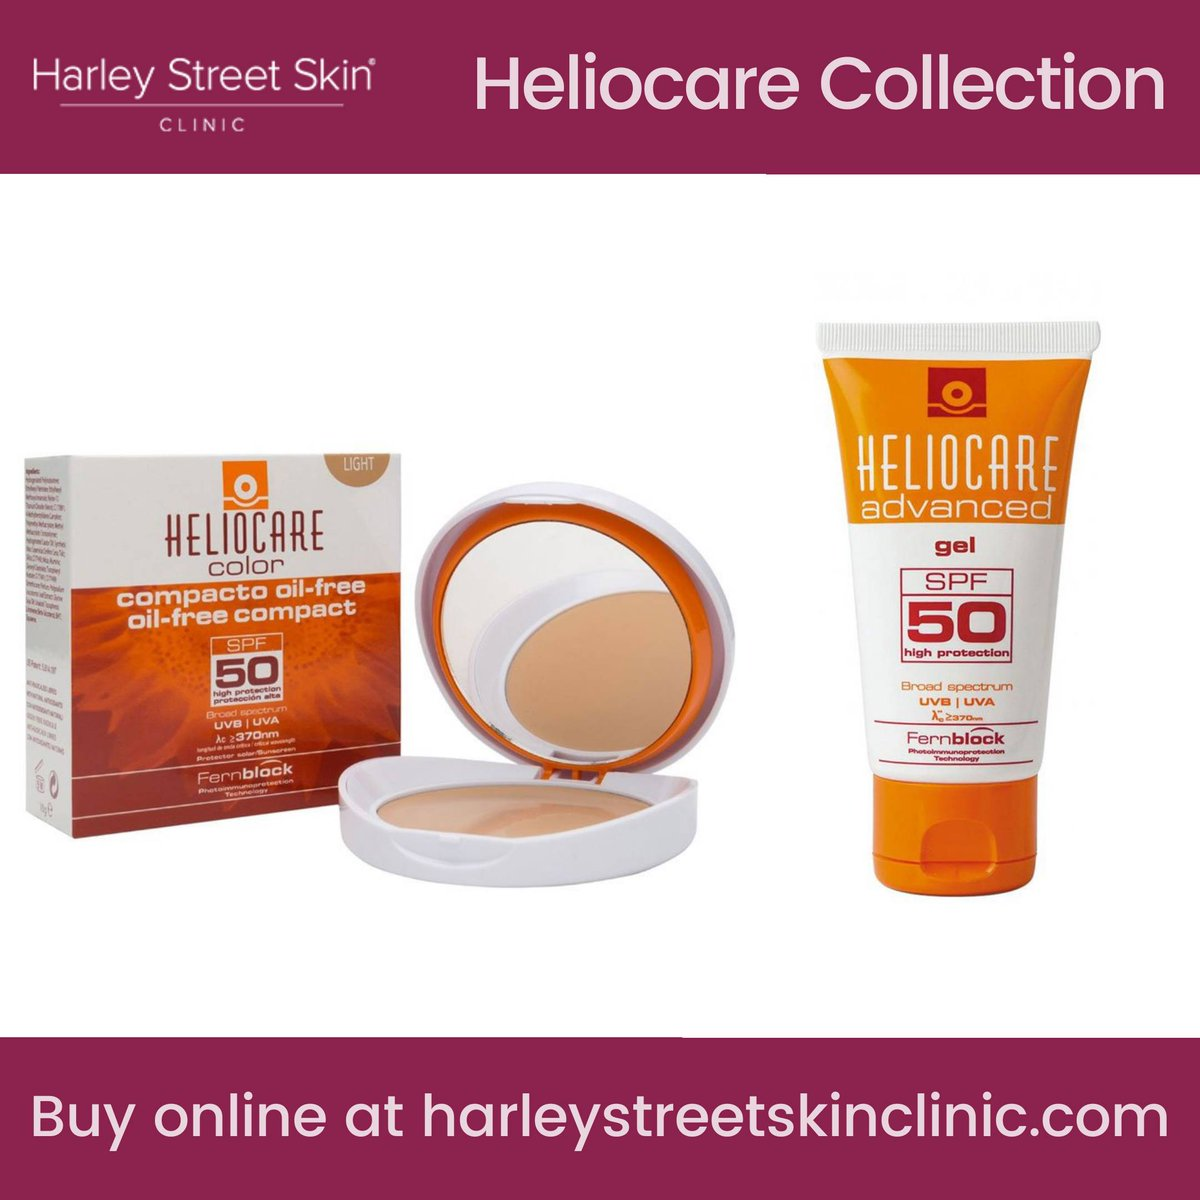 An intelligent range of premium photo-protection products for healthy, happy #skin. Check out the #Heliocare collection in our online shop here: https://t.co/dZNRw6ci3T https://t.co/s9dLN4lyV0